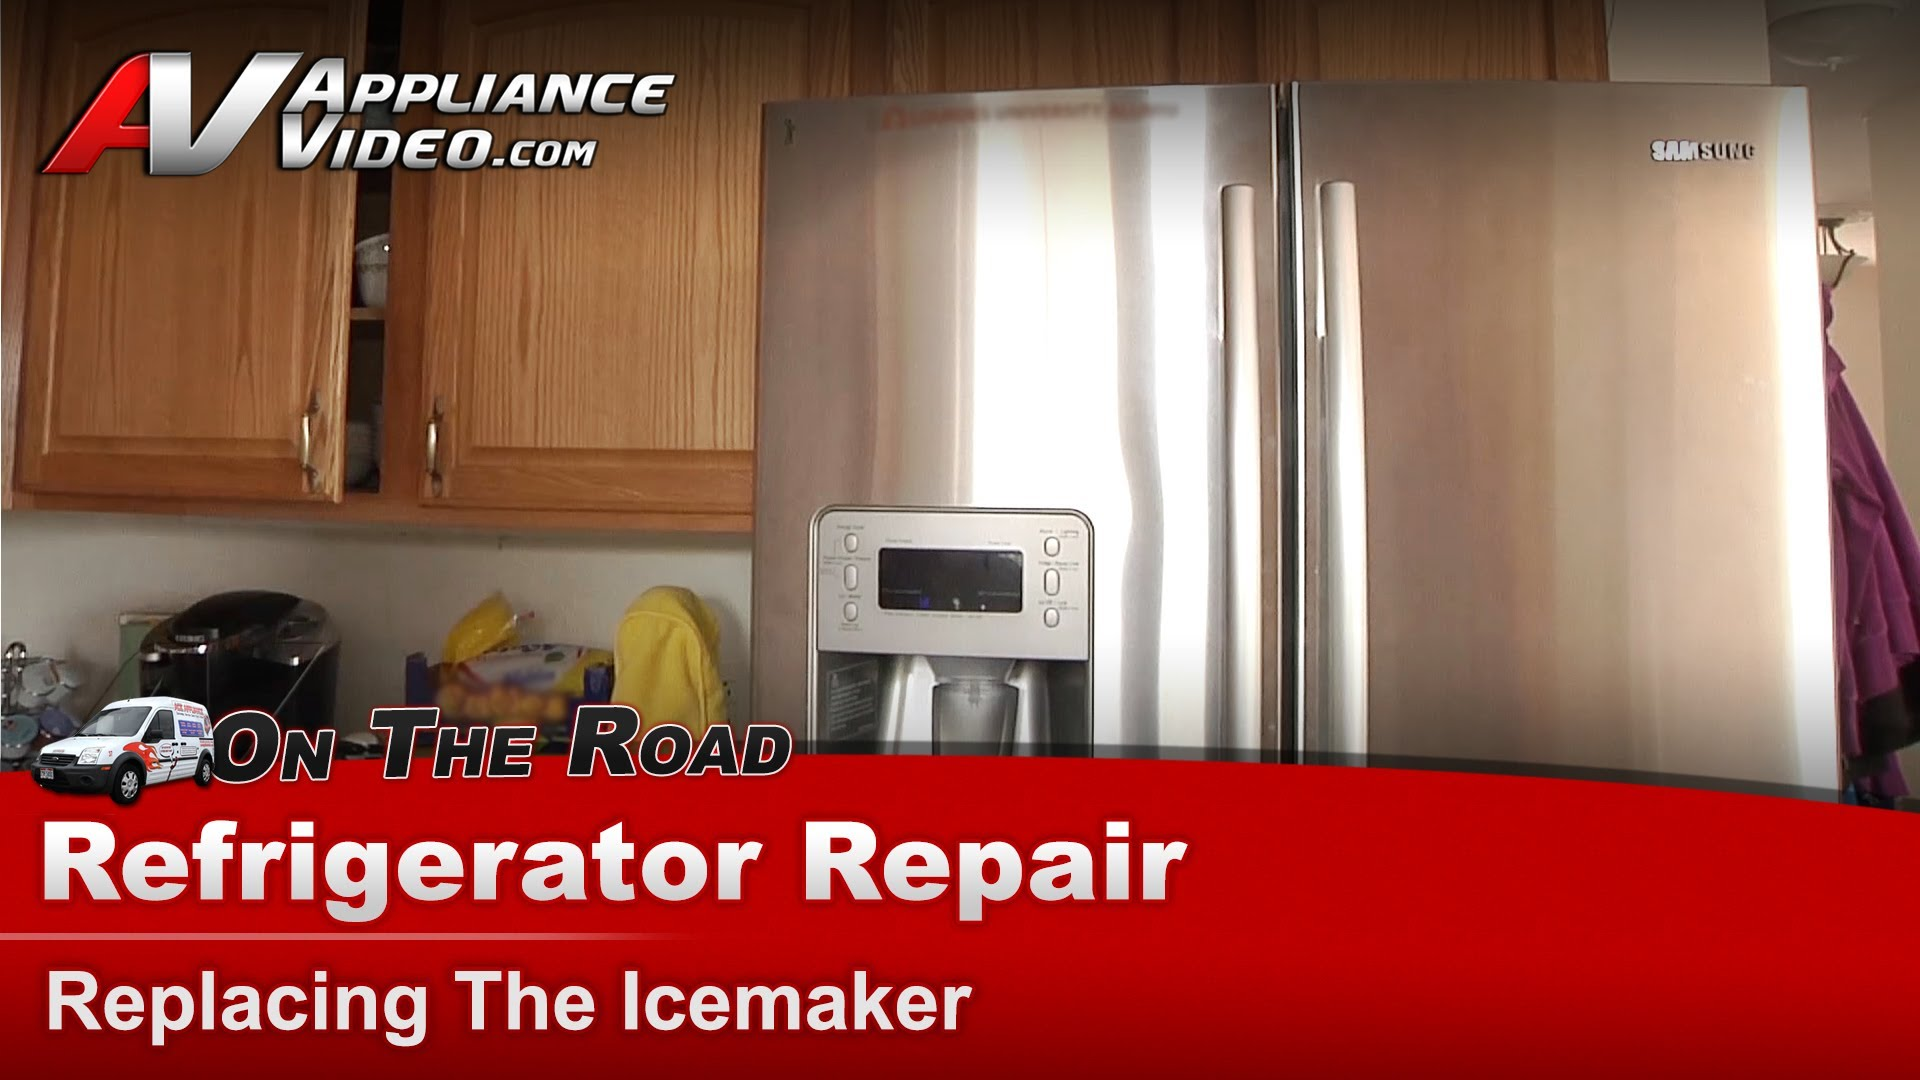 Replace refrigerator door seal - Samsung Rf267abrs Refrigerator Diagnostic And Repair Replacing The Ice Maker Ice Maker Appliance Video